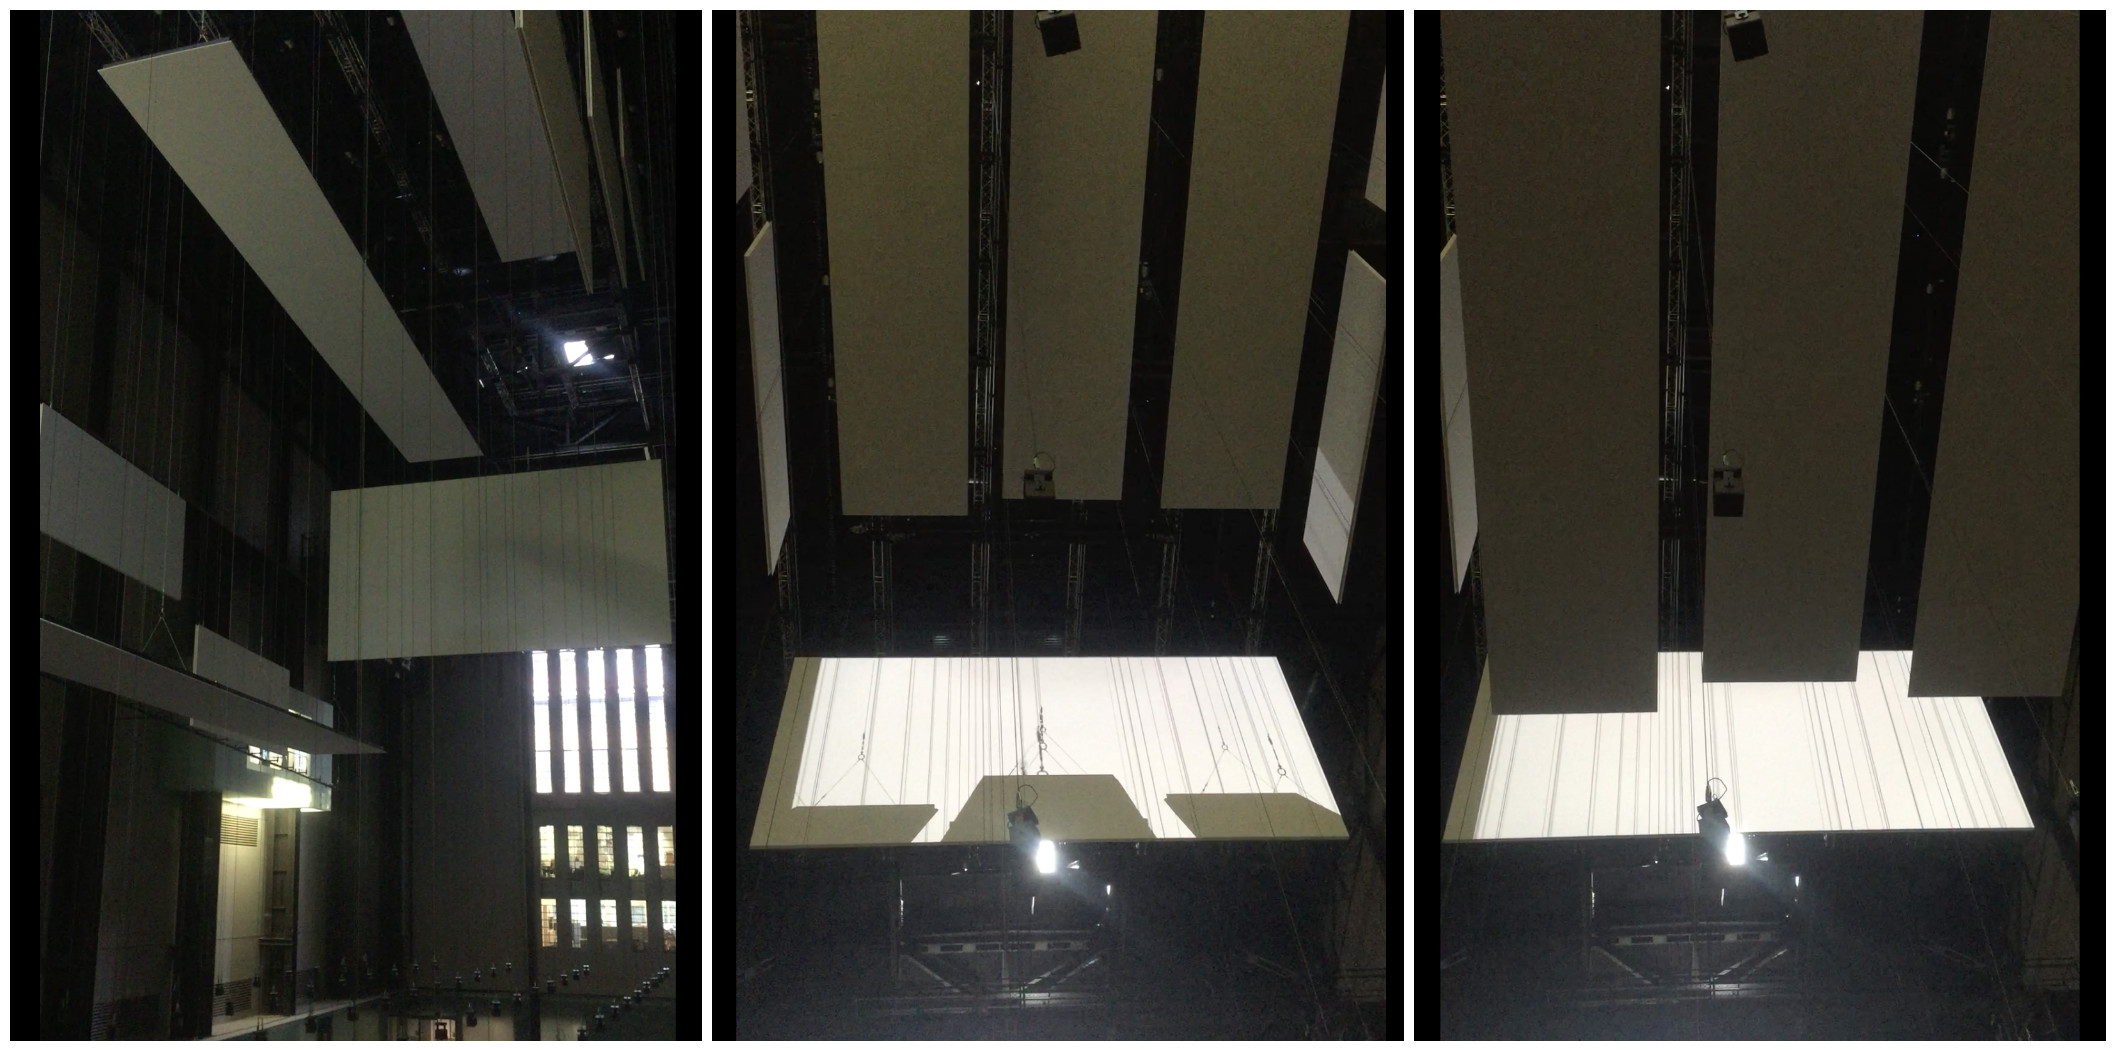 Left: View from the second floor. Center and Right: View from the ground floor - the three screens were parallel to the ground and dropping until they were just about 7 feet overhead.